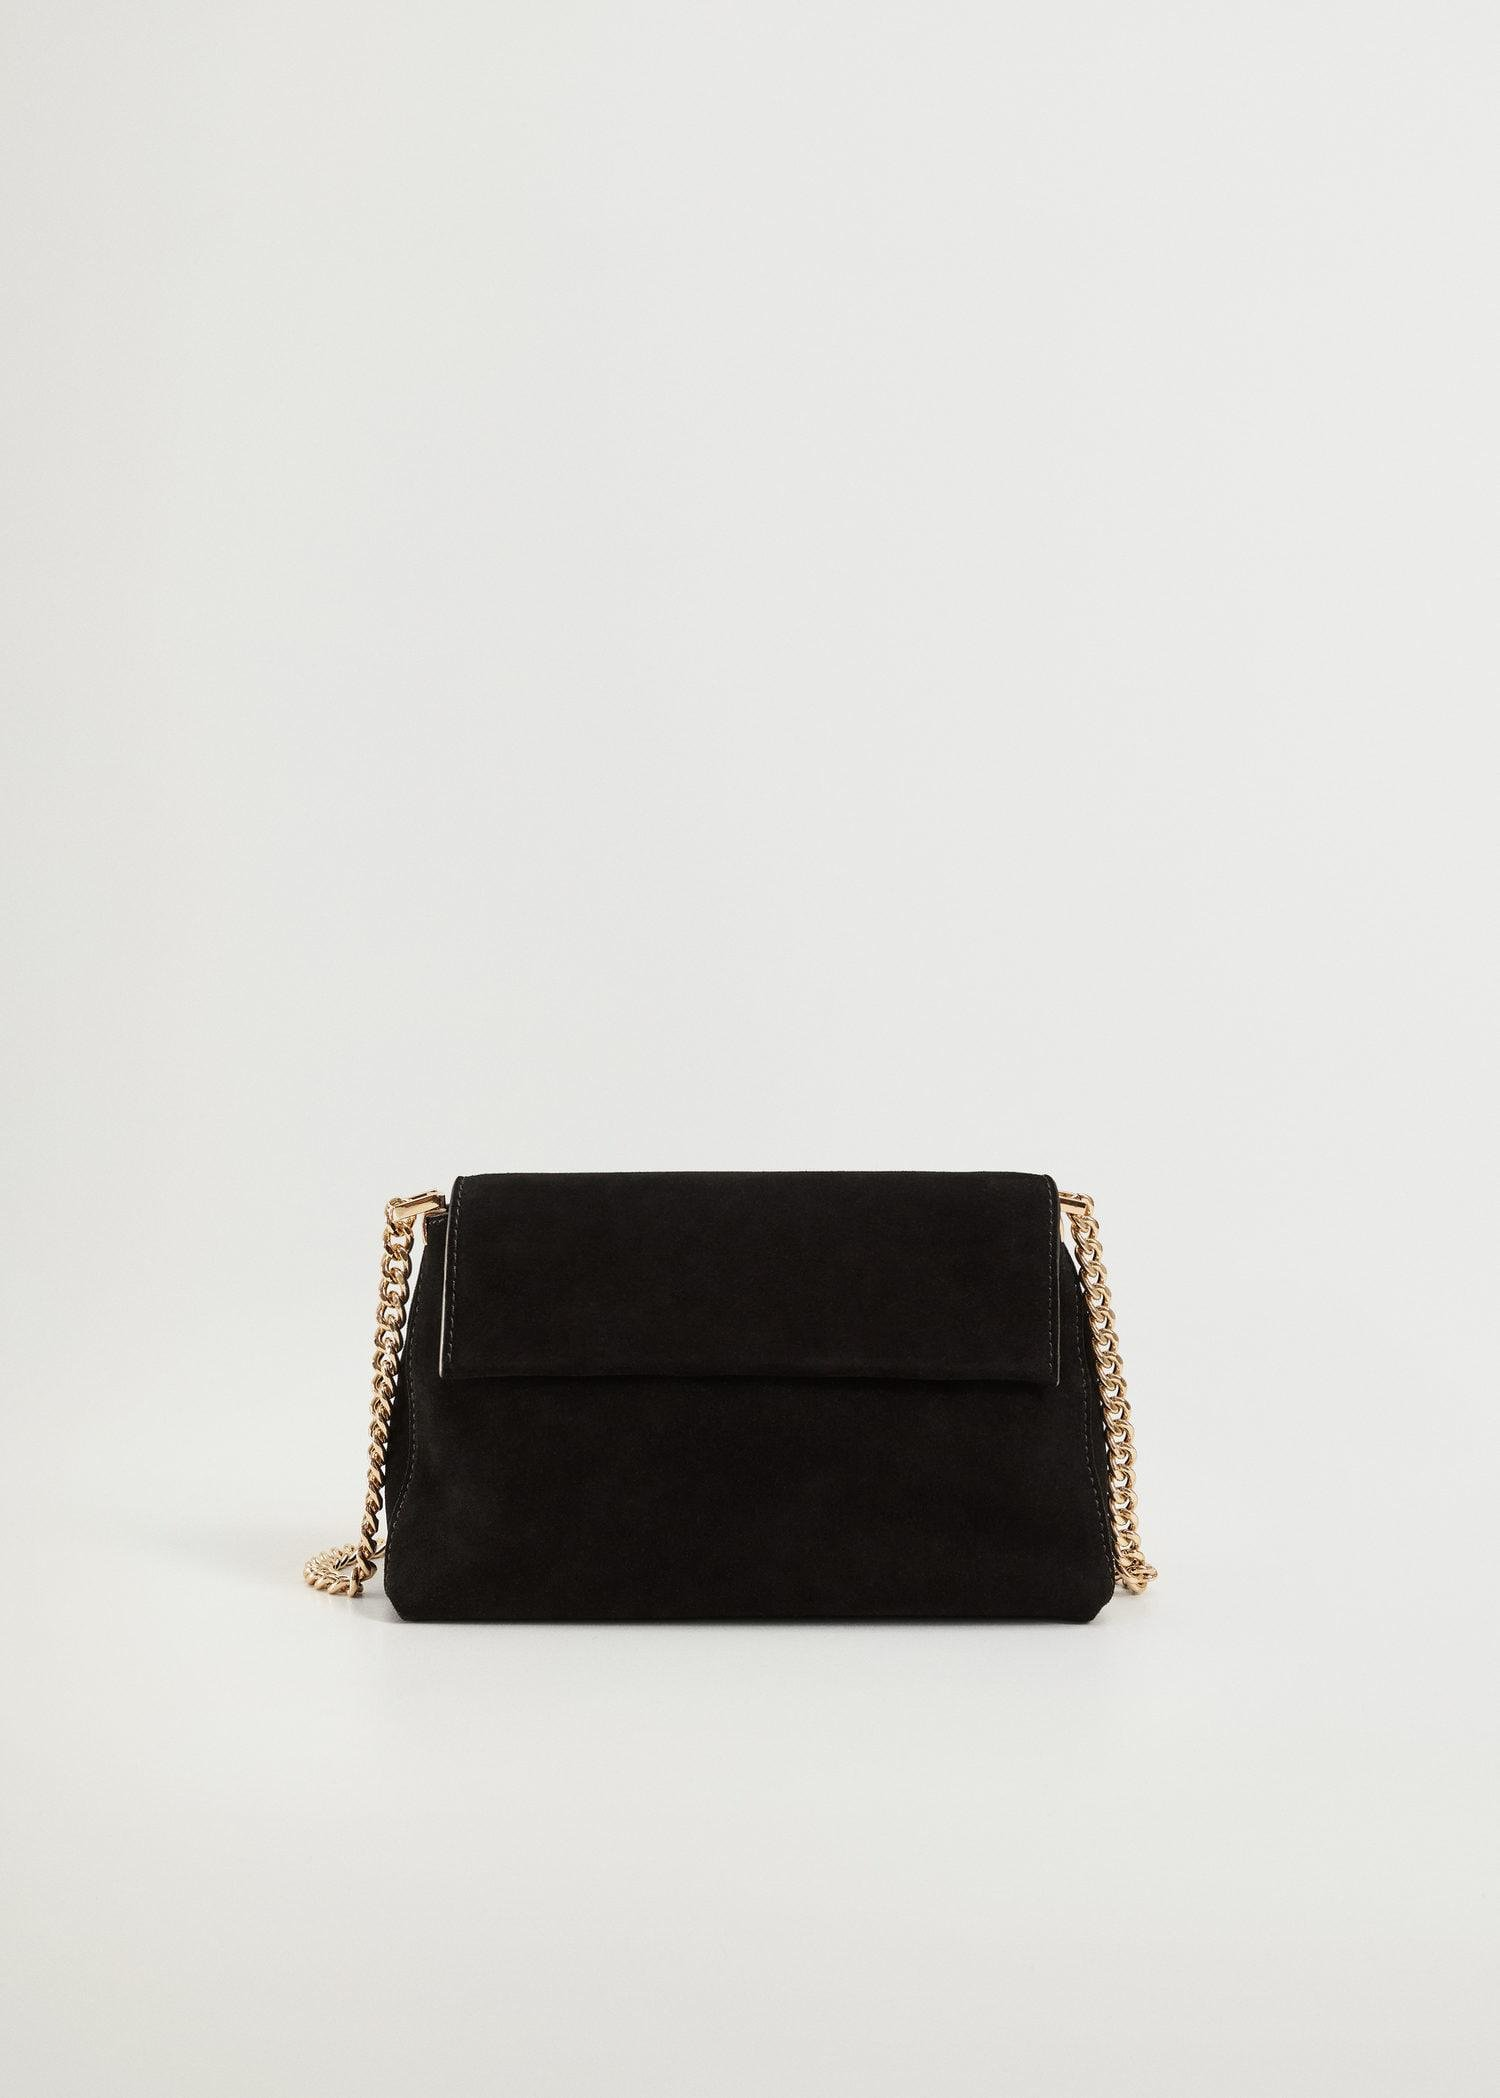 Chain leather bag